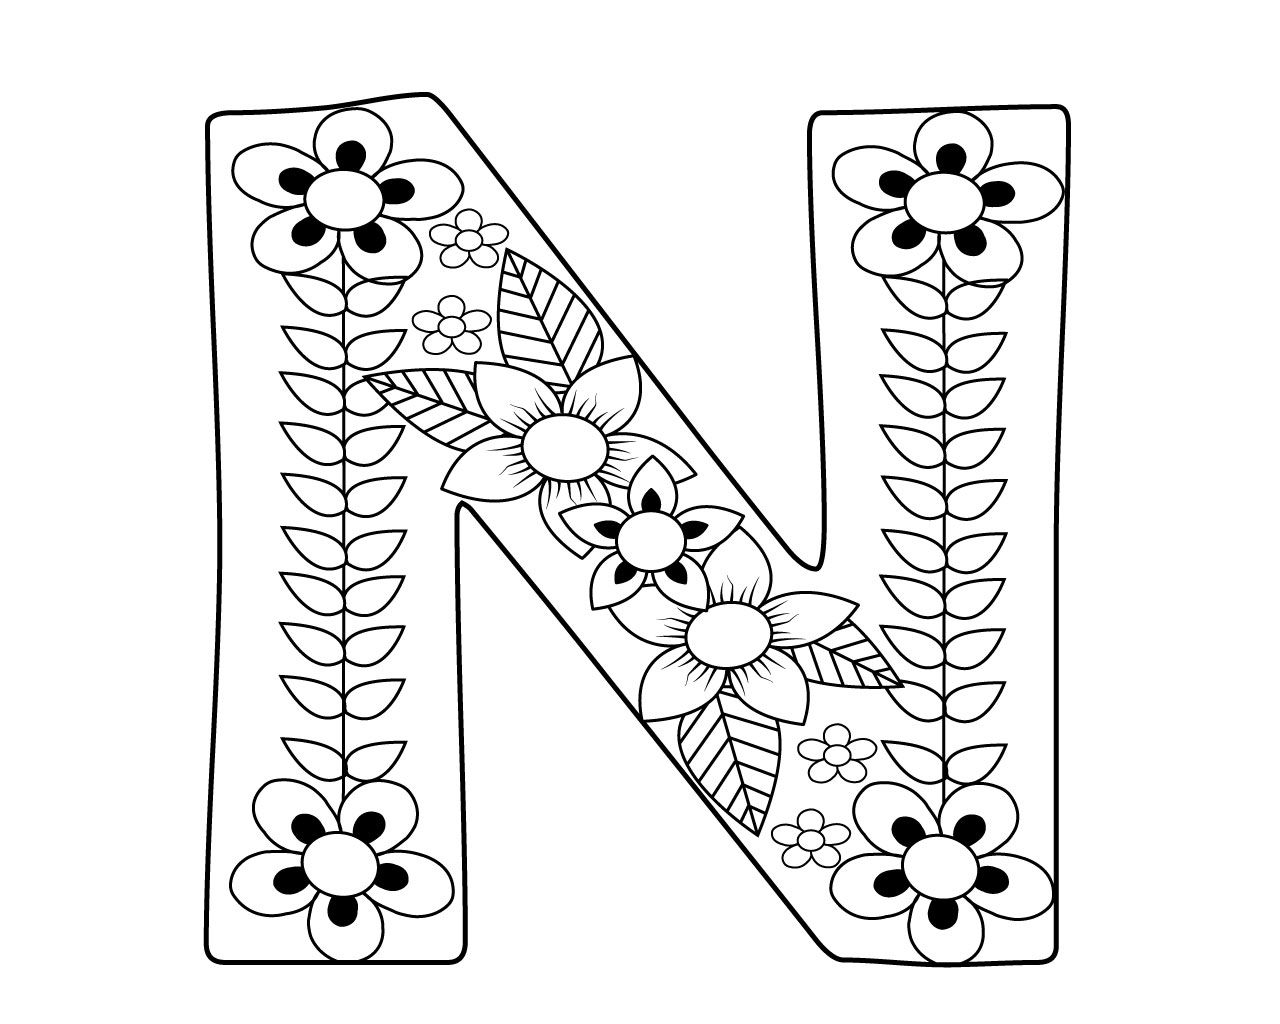 letter n coloring pages for adults zentangle stylized alphabet letter n in doodle style n coloring letter for adults pages